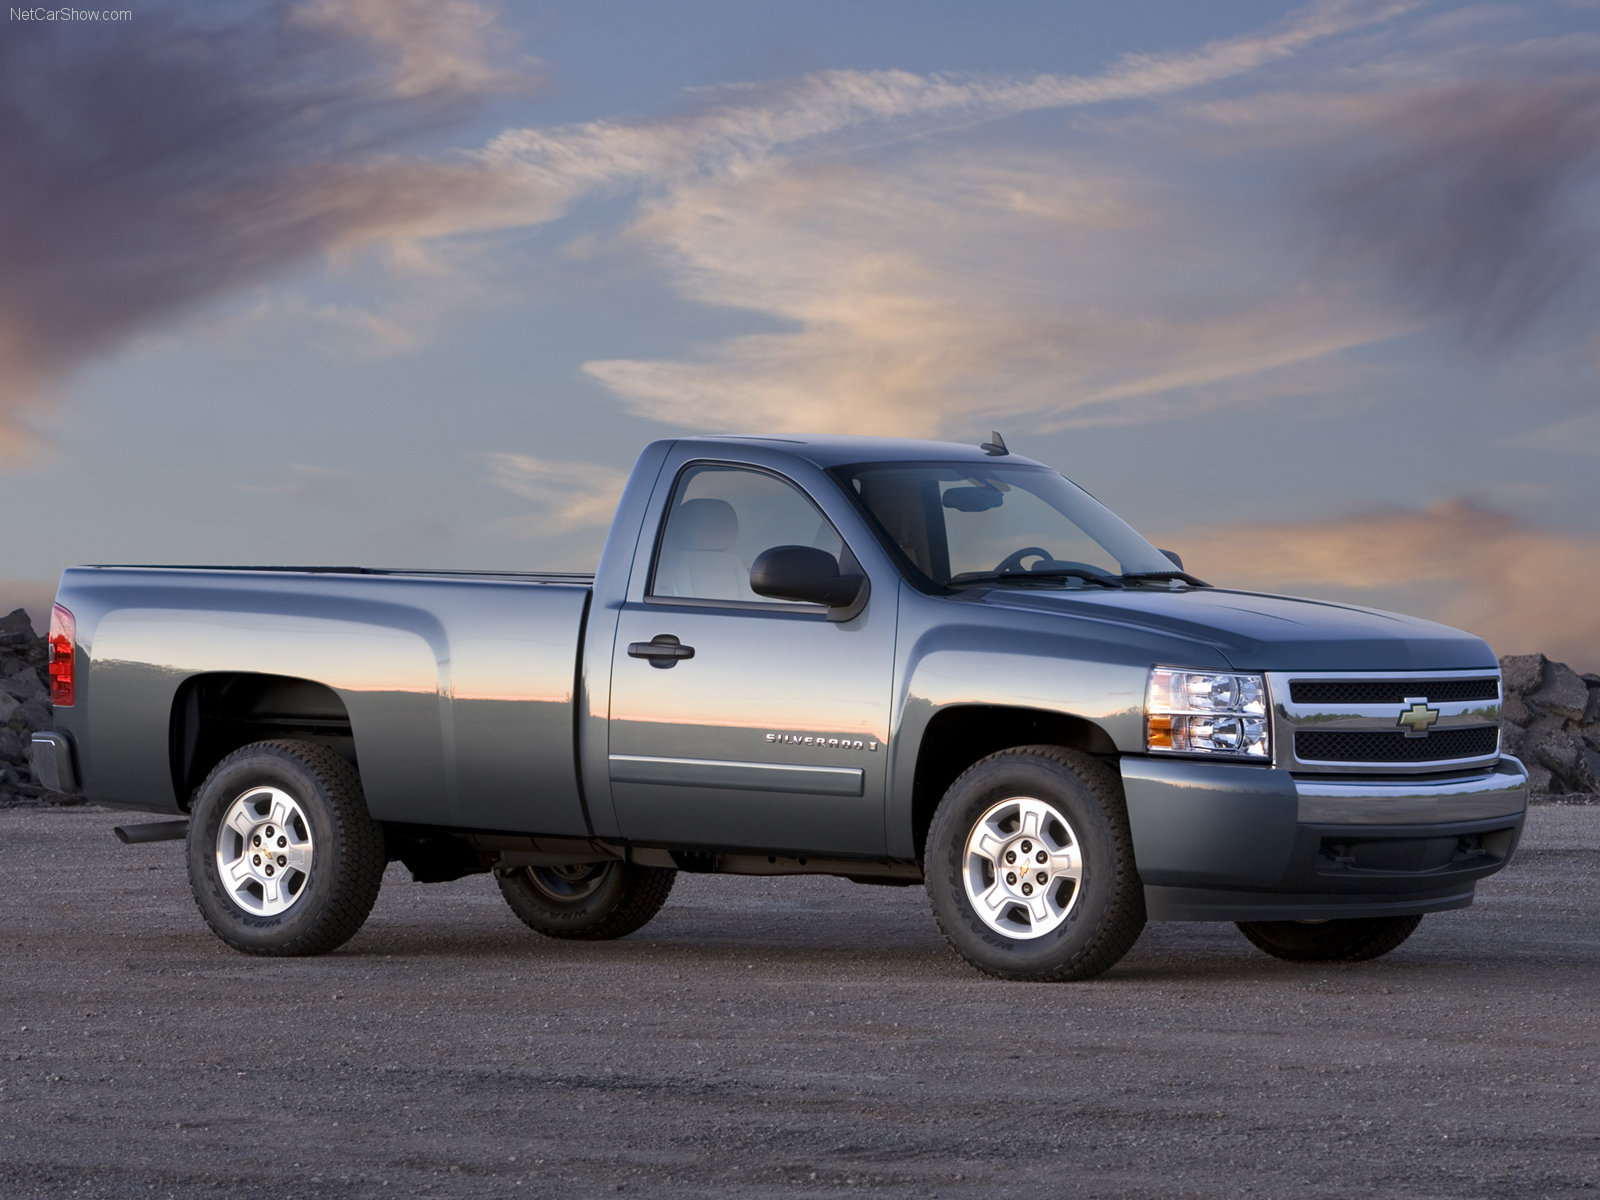 3dtuning Of Chevrolet Silverado Regular Cab Truck 2007